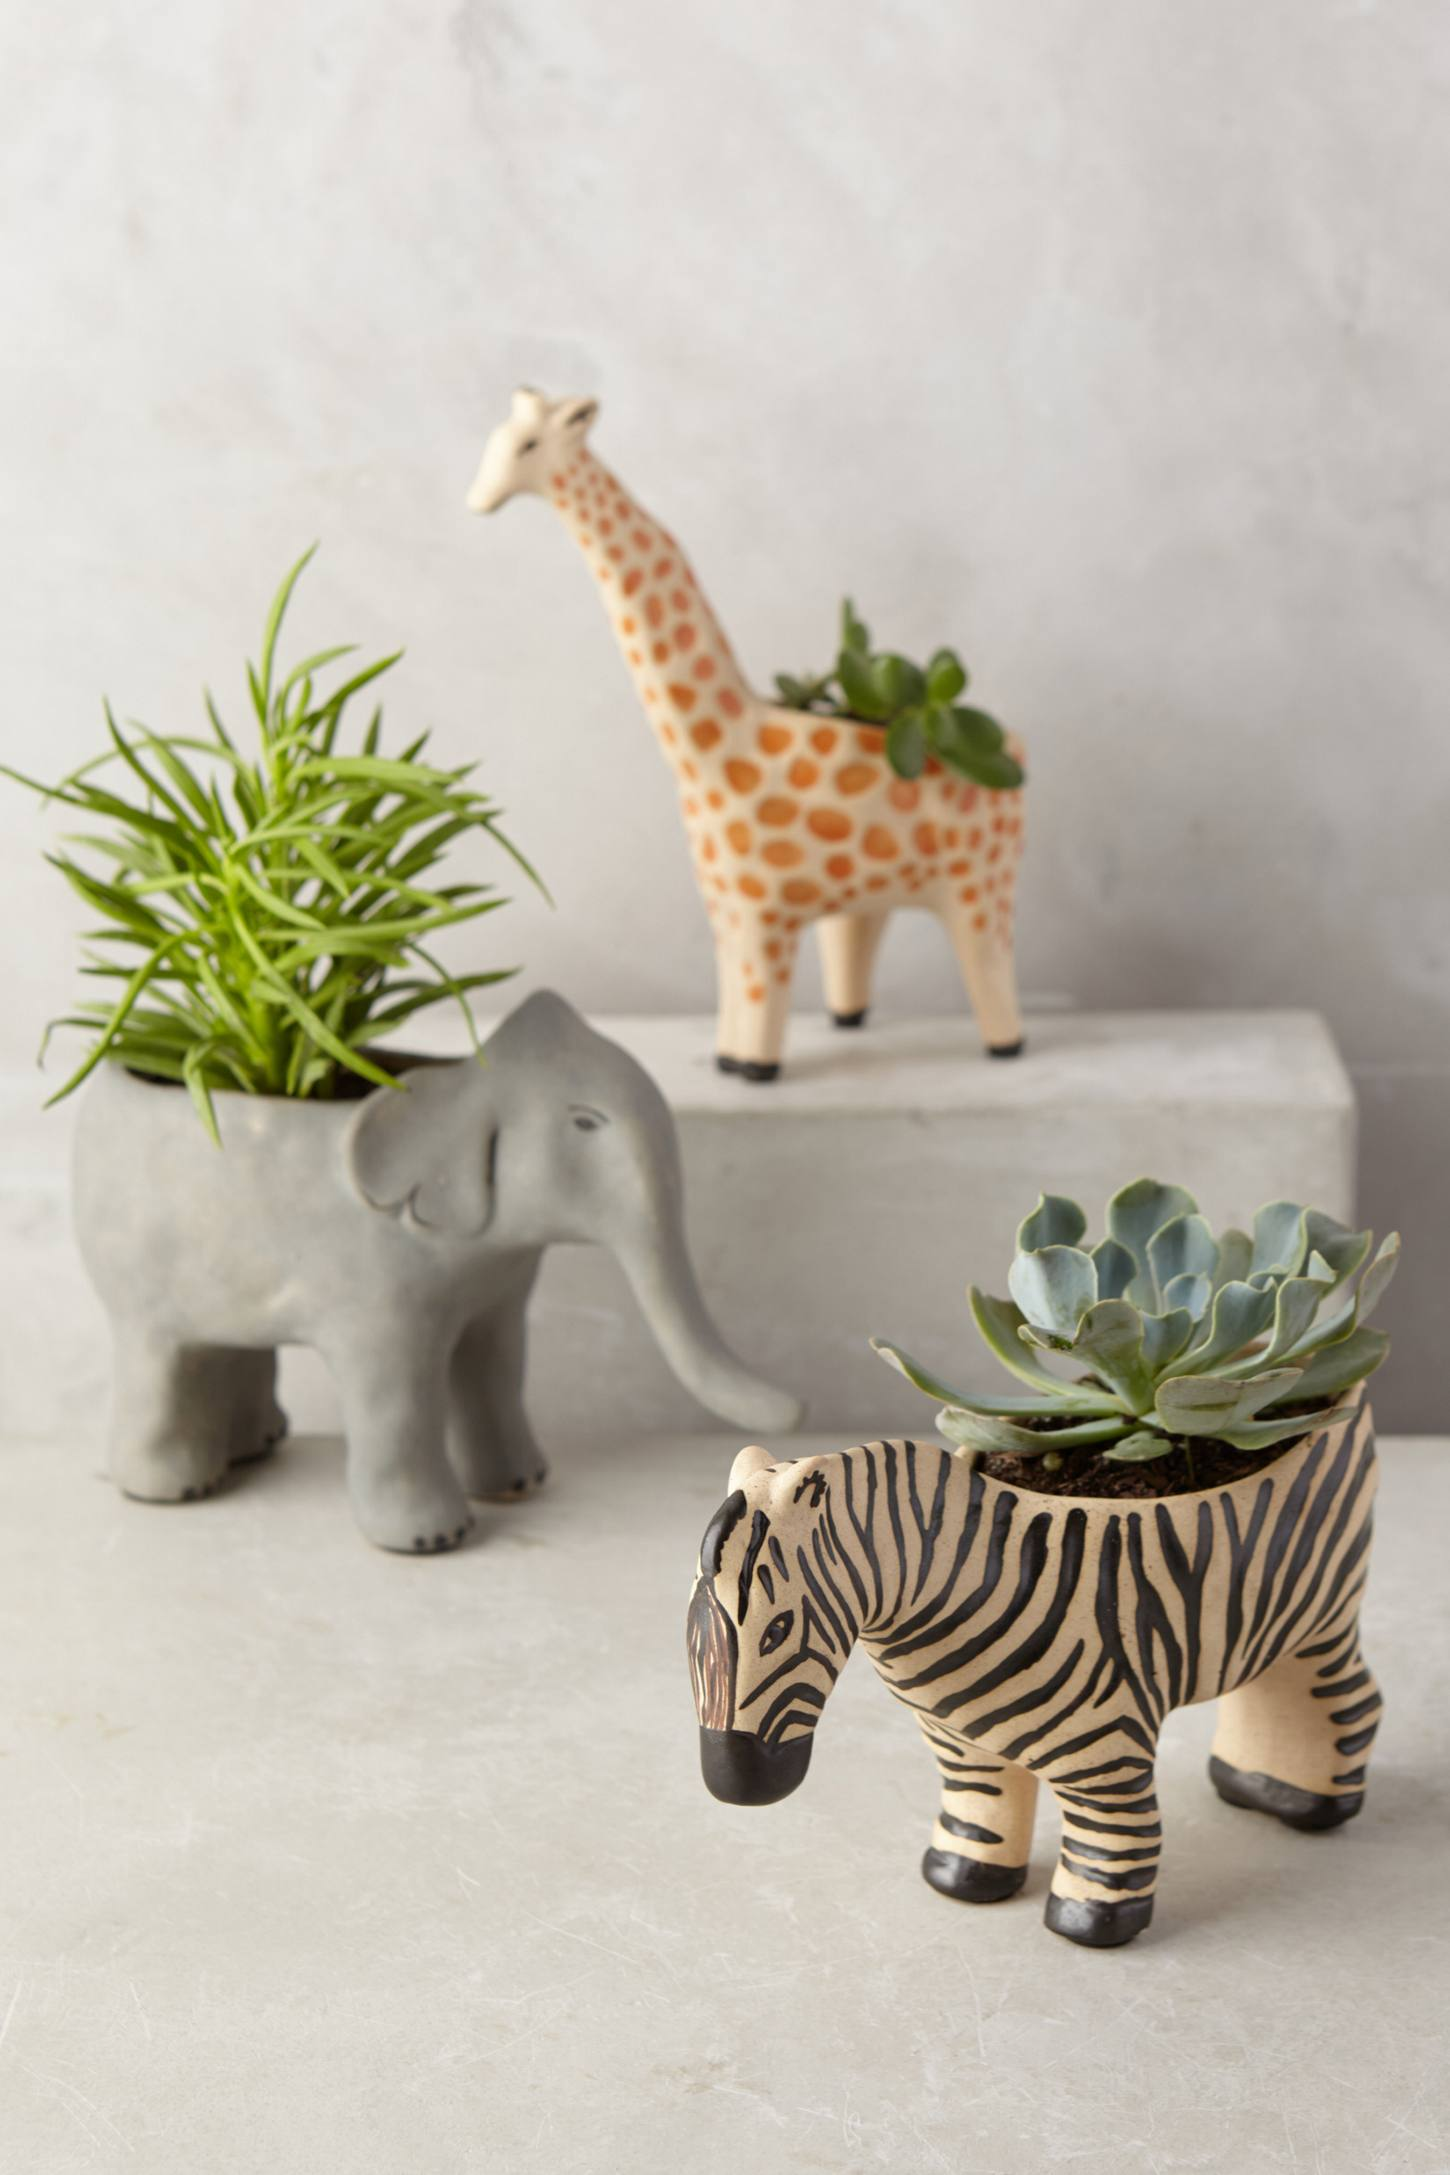 Animal Figurines Home Decor Animal Succulent Planter Home Decorating Trends Homedit